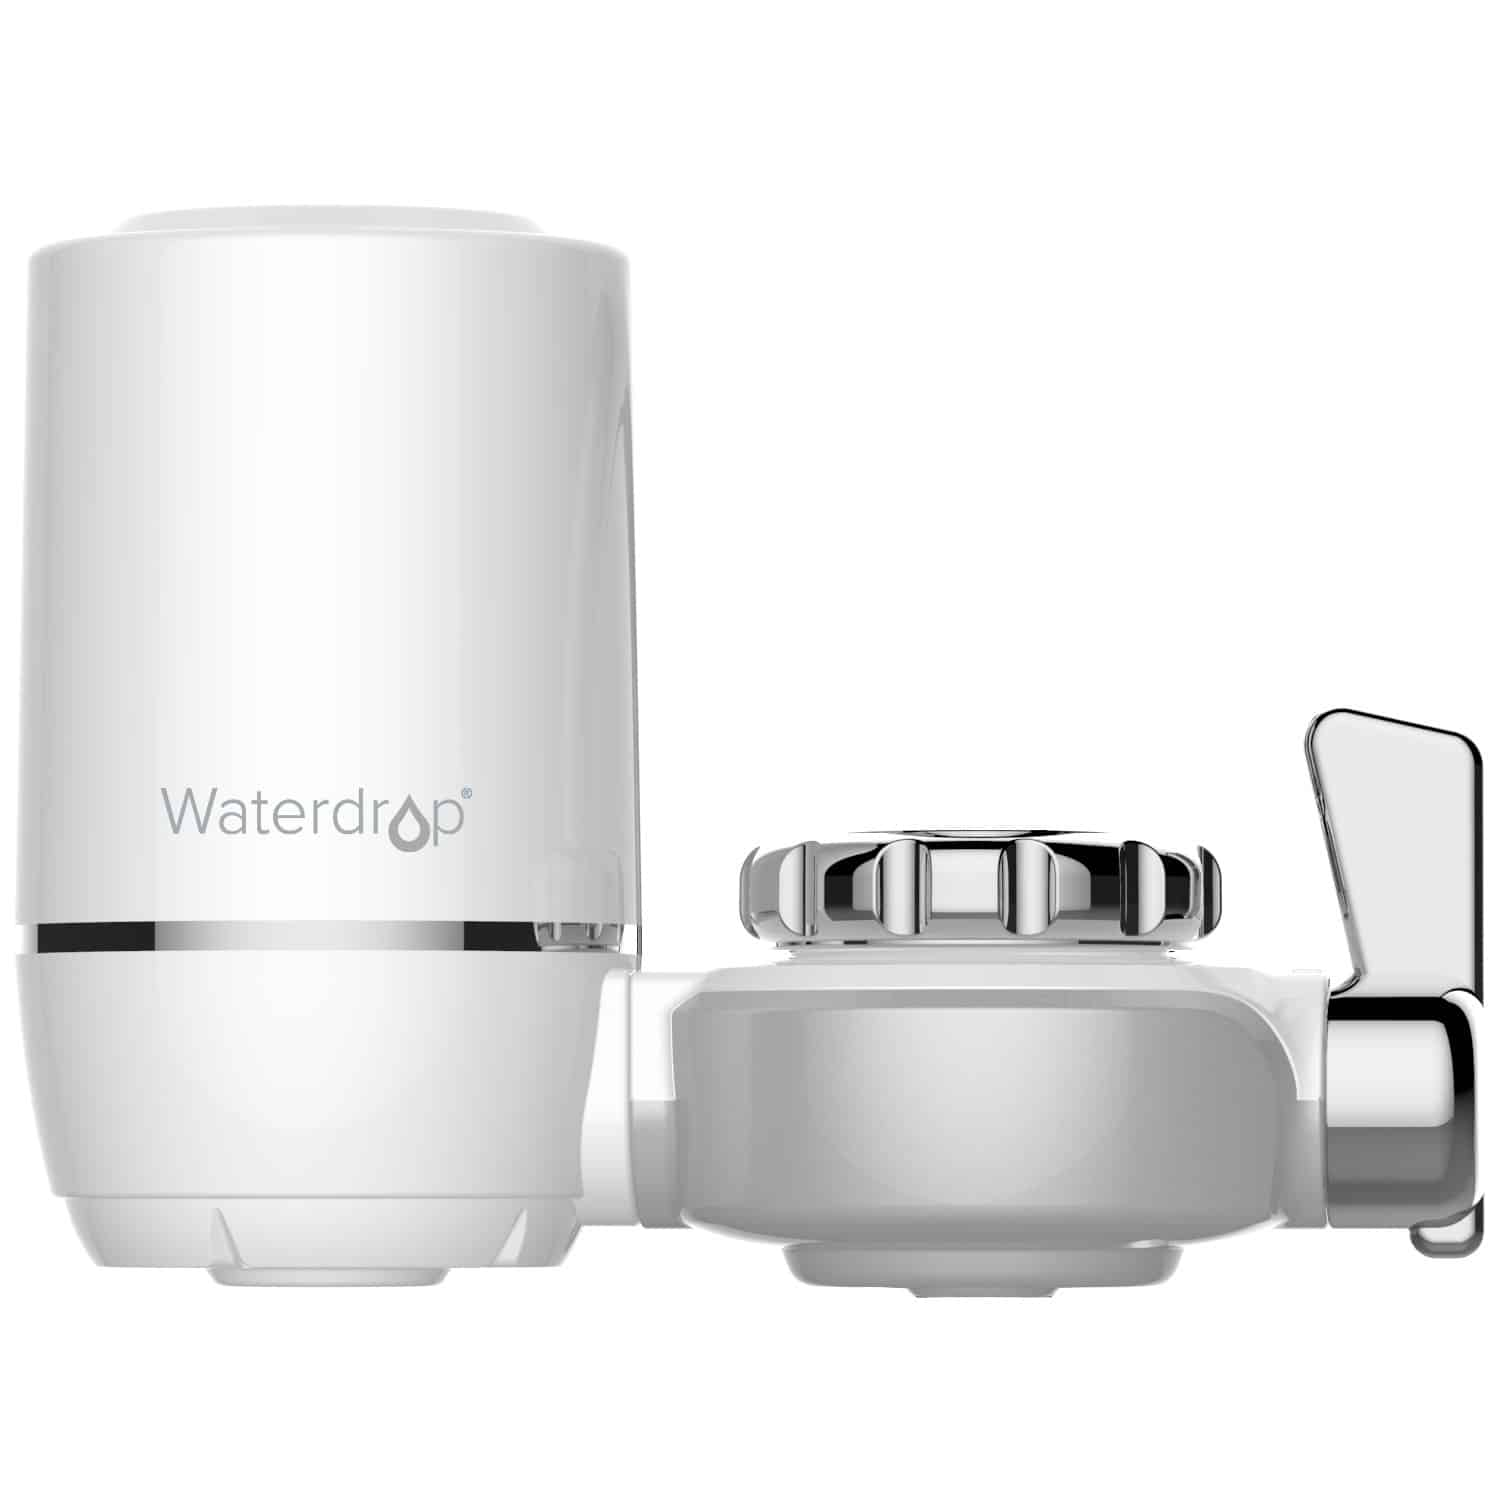 WaterDrop water faucet filtration system